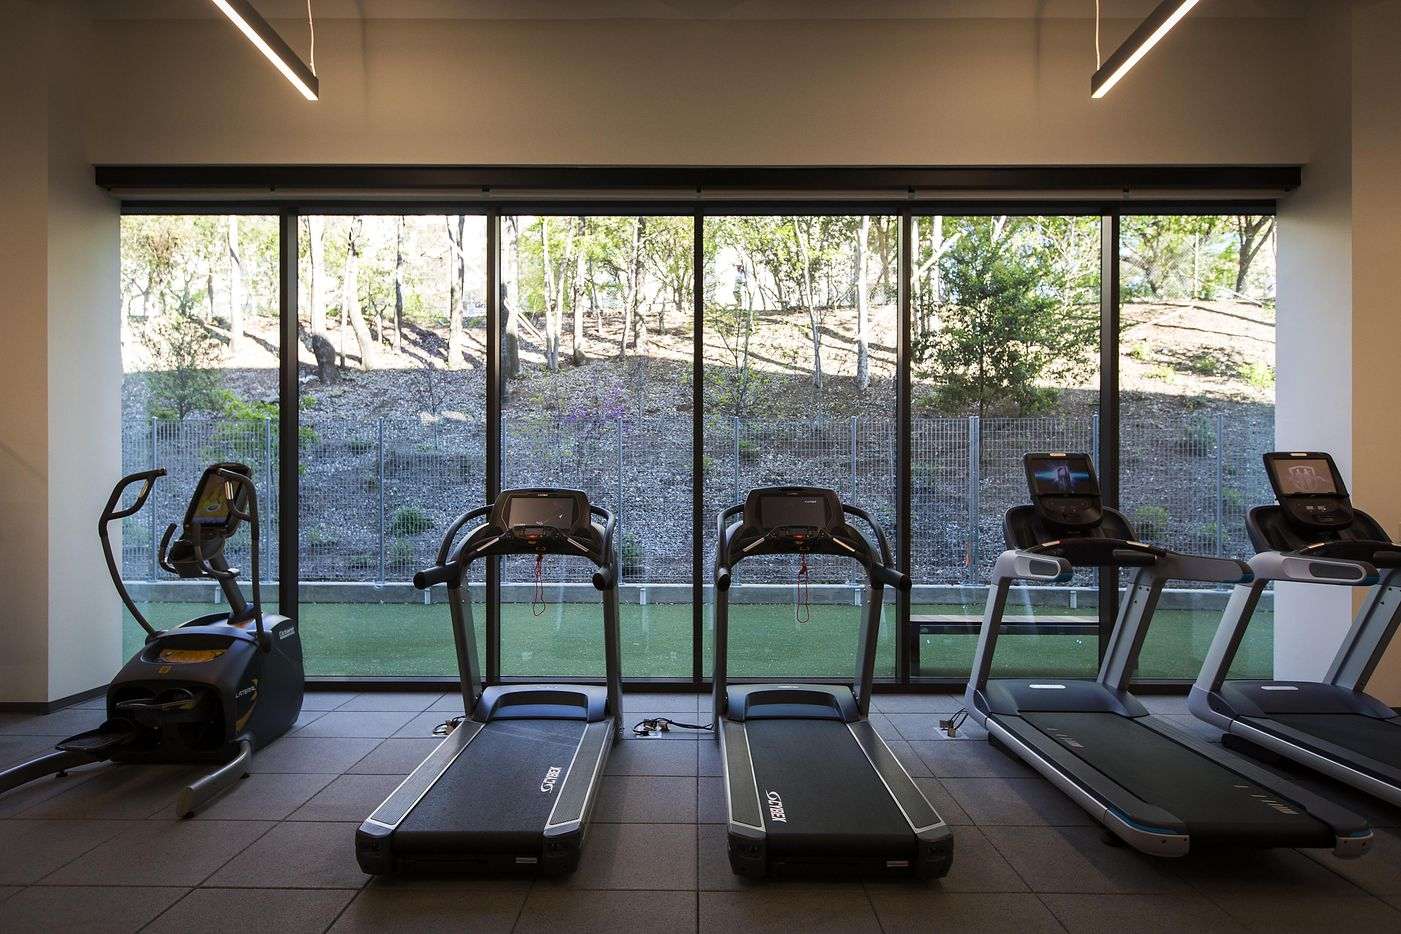 The fitness center at the new headquarters for Perot companies looks out onto the Katy Trail.